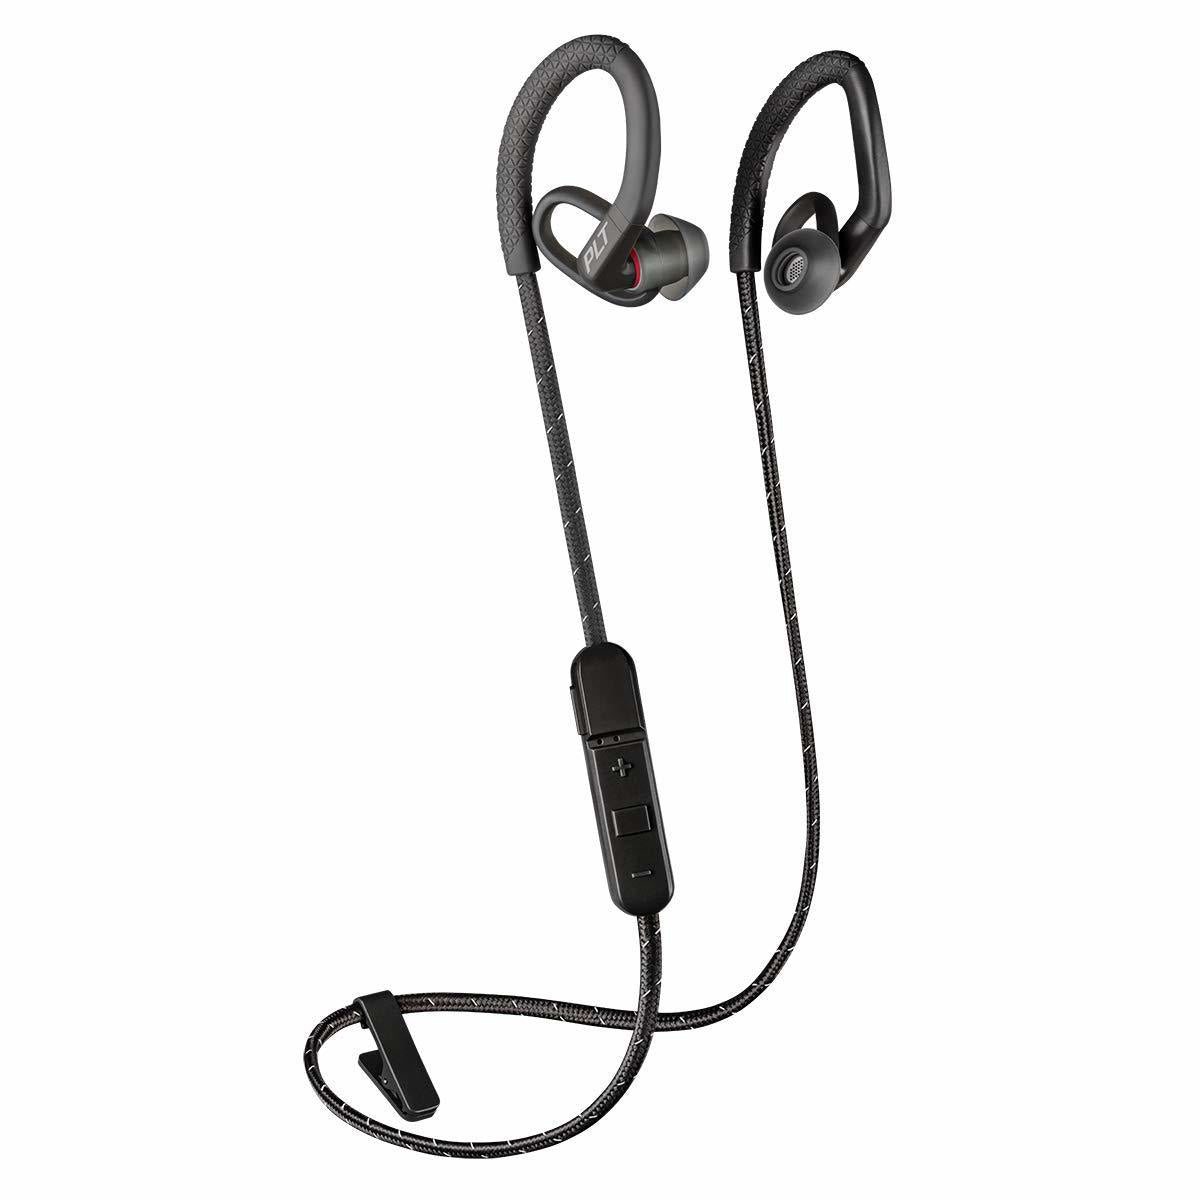 Plantronics BackBeat FIT 350 Wireless Headphones, Stable, Ultra-Light, Sweatproof in Ear Workout Headphones, Black